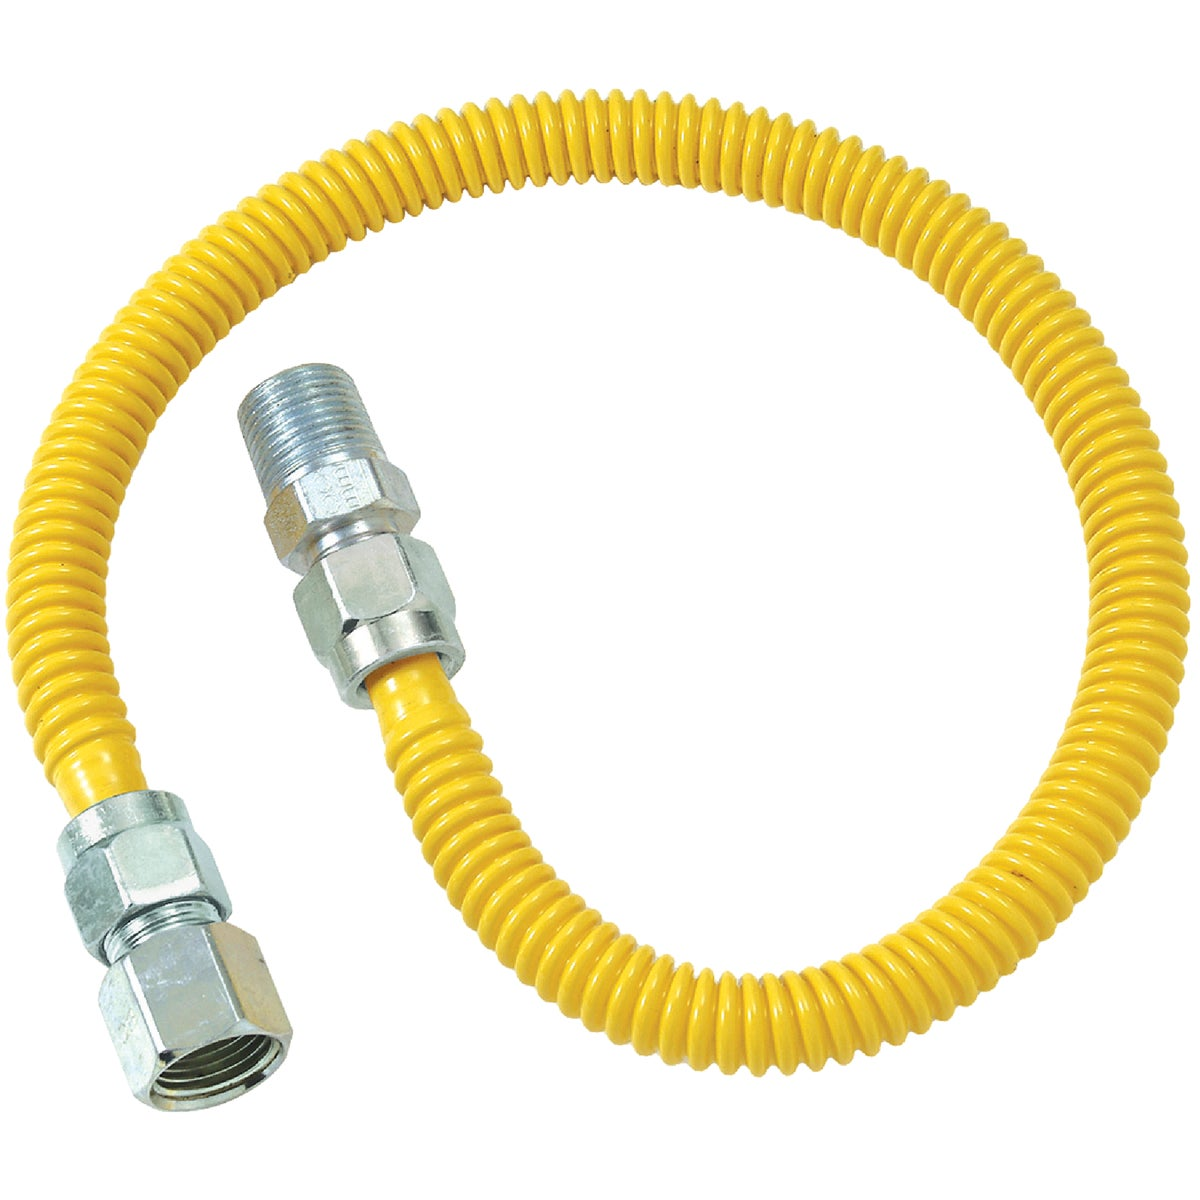 1/2X24 GAS CONNECTOR